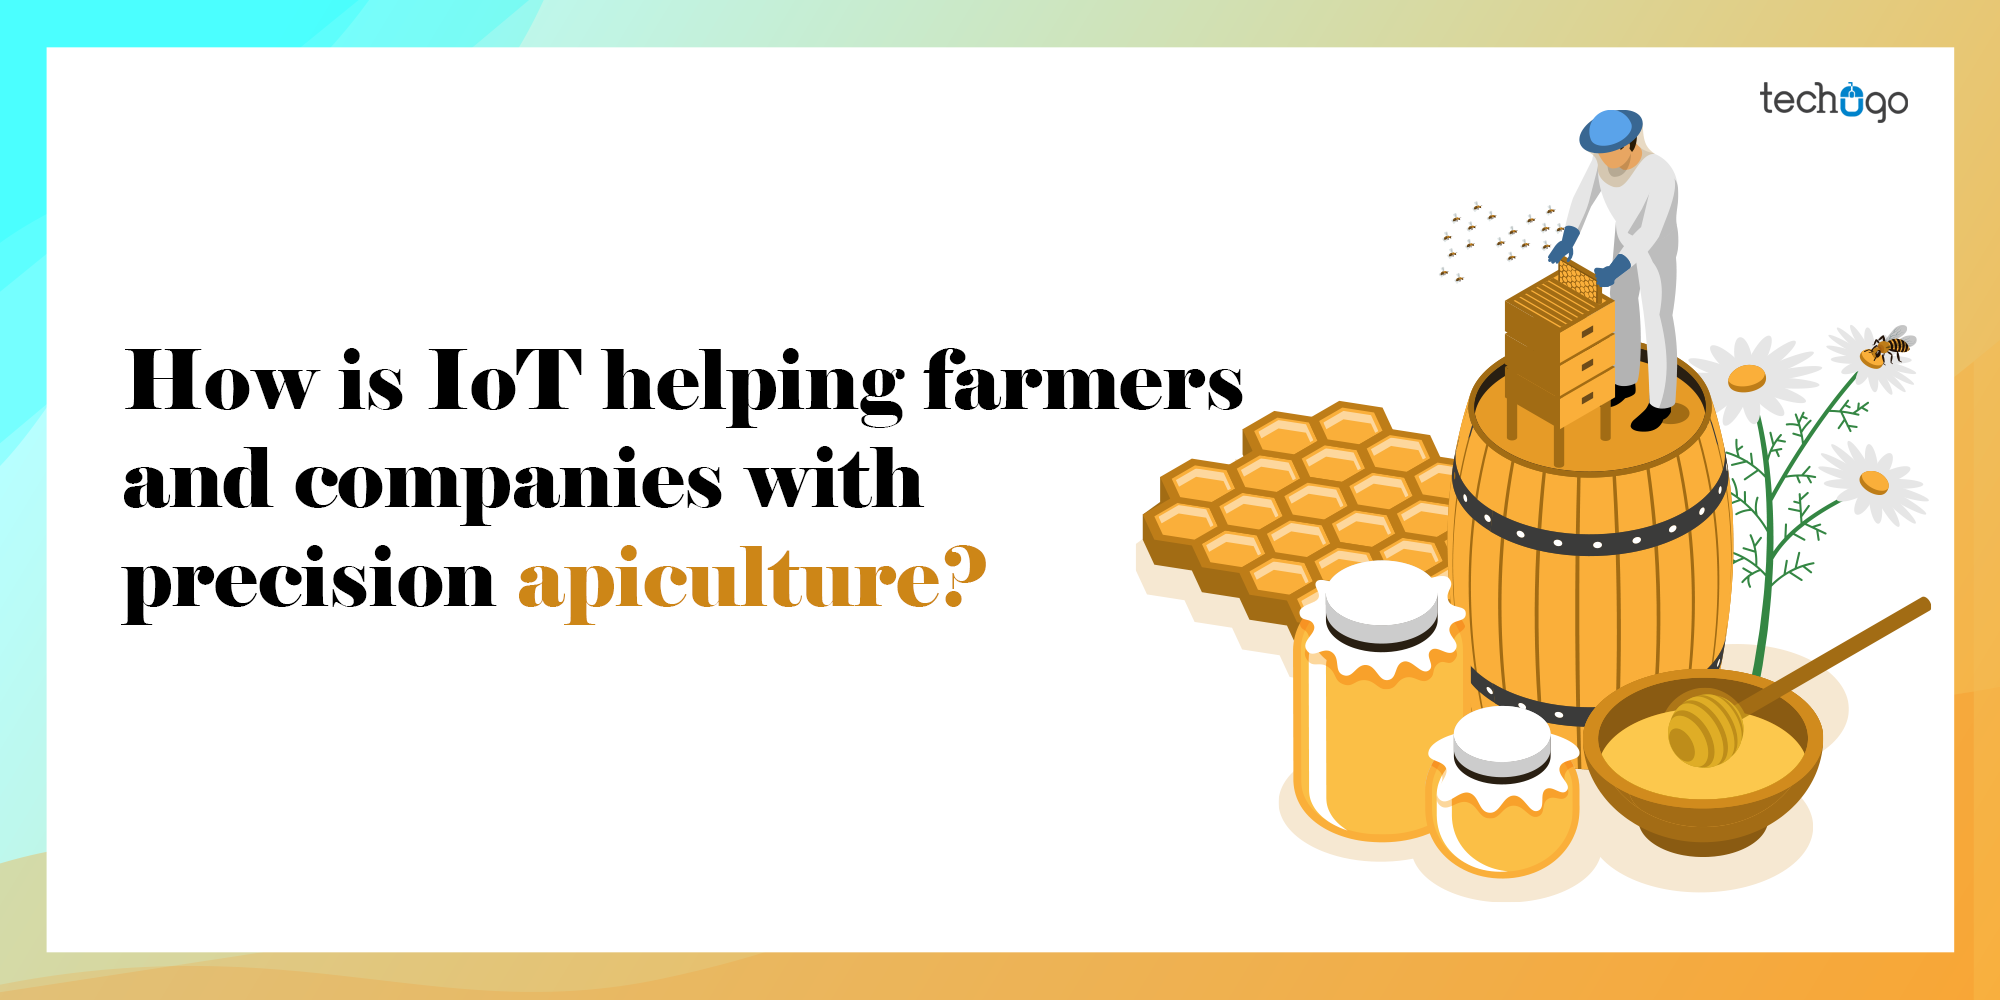 How is IoT Helping Farmers and Companies with Precision Apiculture?